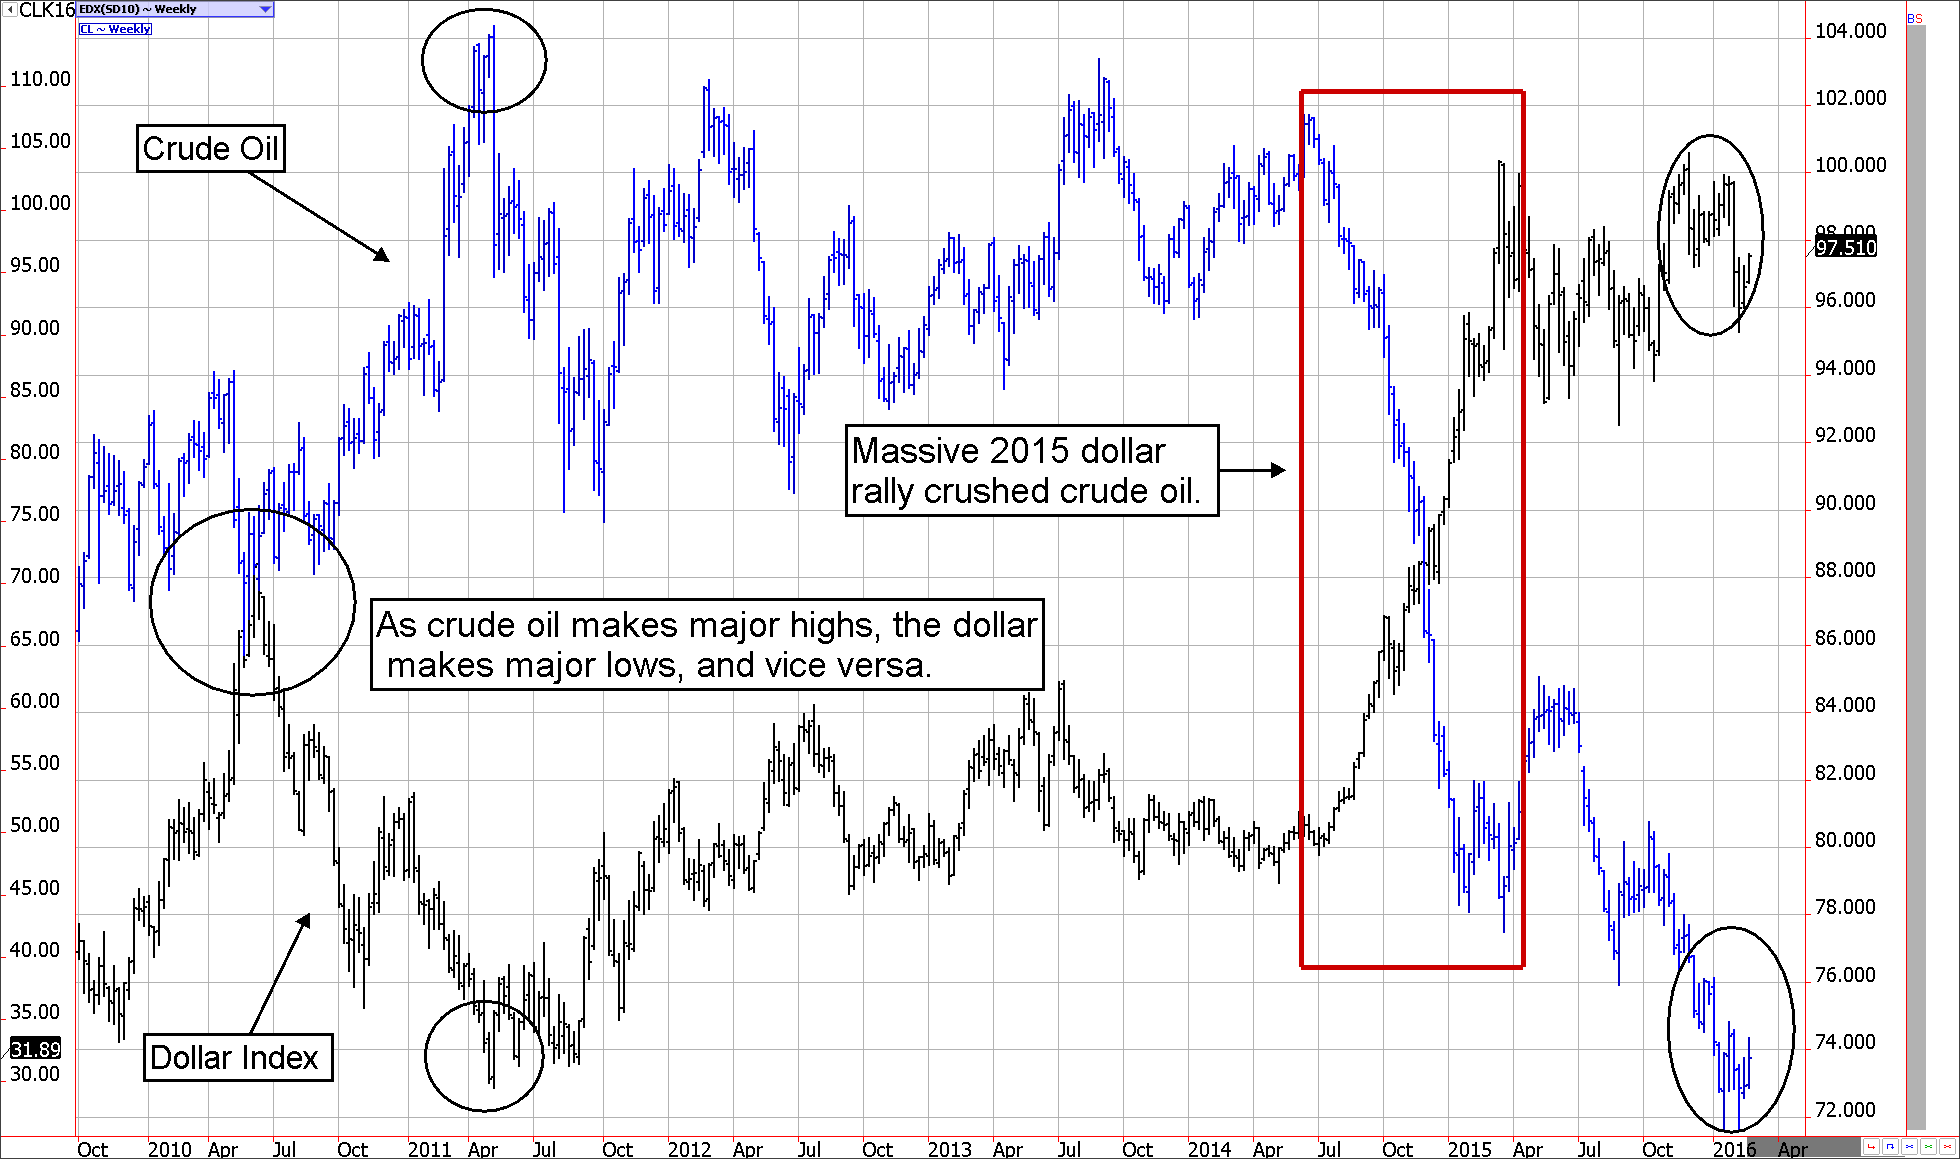 WTI Crude Oil Futures and the U.S. Dollar